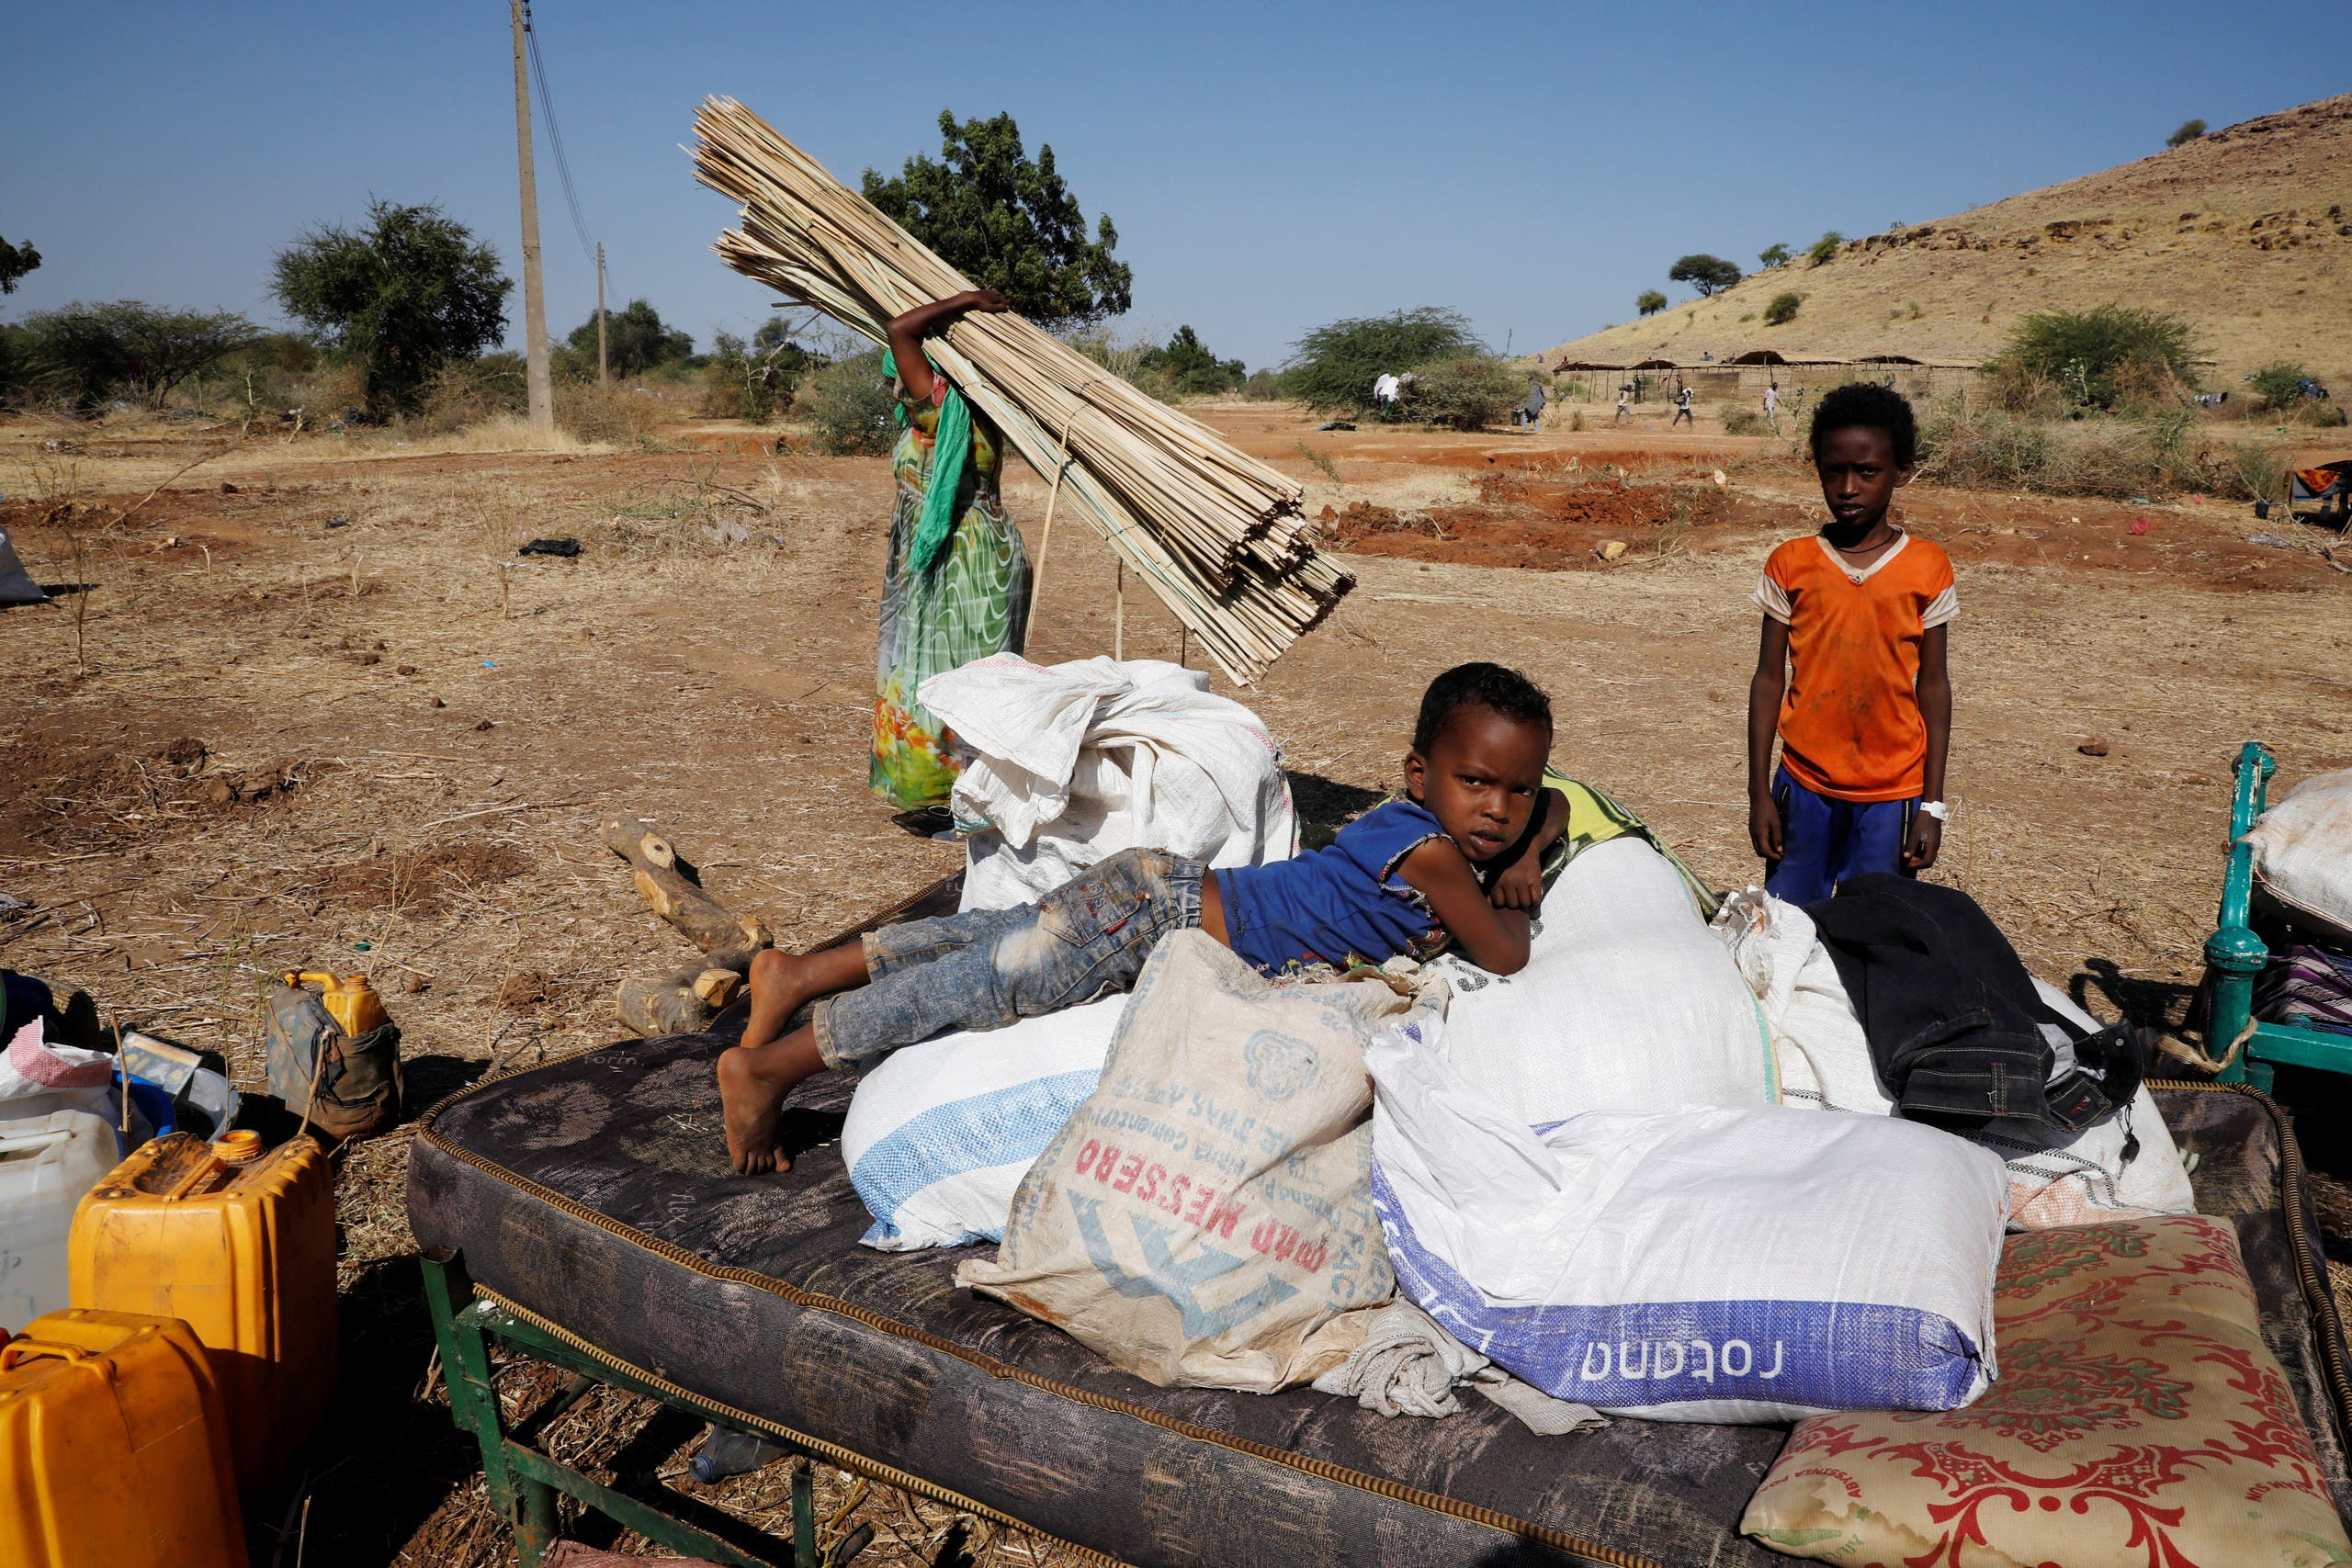 Ethiopian refugees sit on their belongings at the Um Rakuba refugee camp which houses Ethiopian refugees fleeing the fighting in the Tigray region, on the Sudan-Ethiopia border, Sudan, November 28, 2020. (File photo: Reuters)